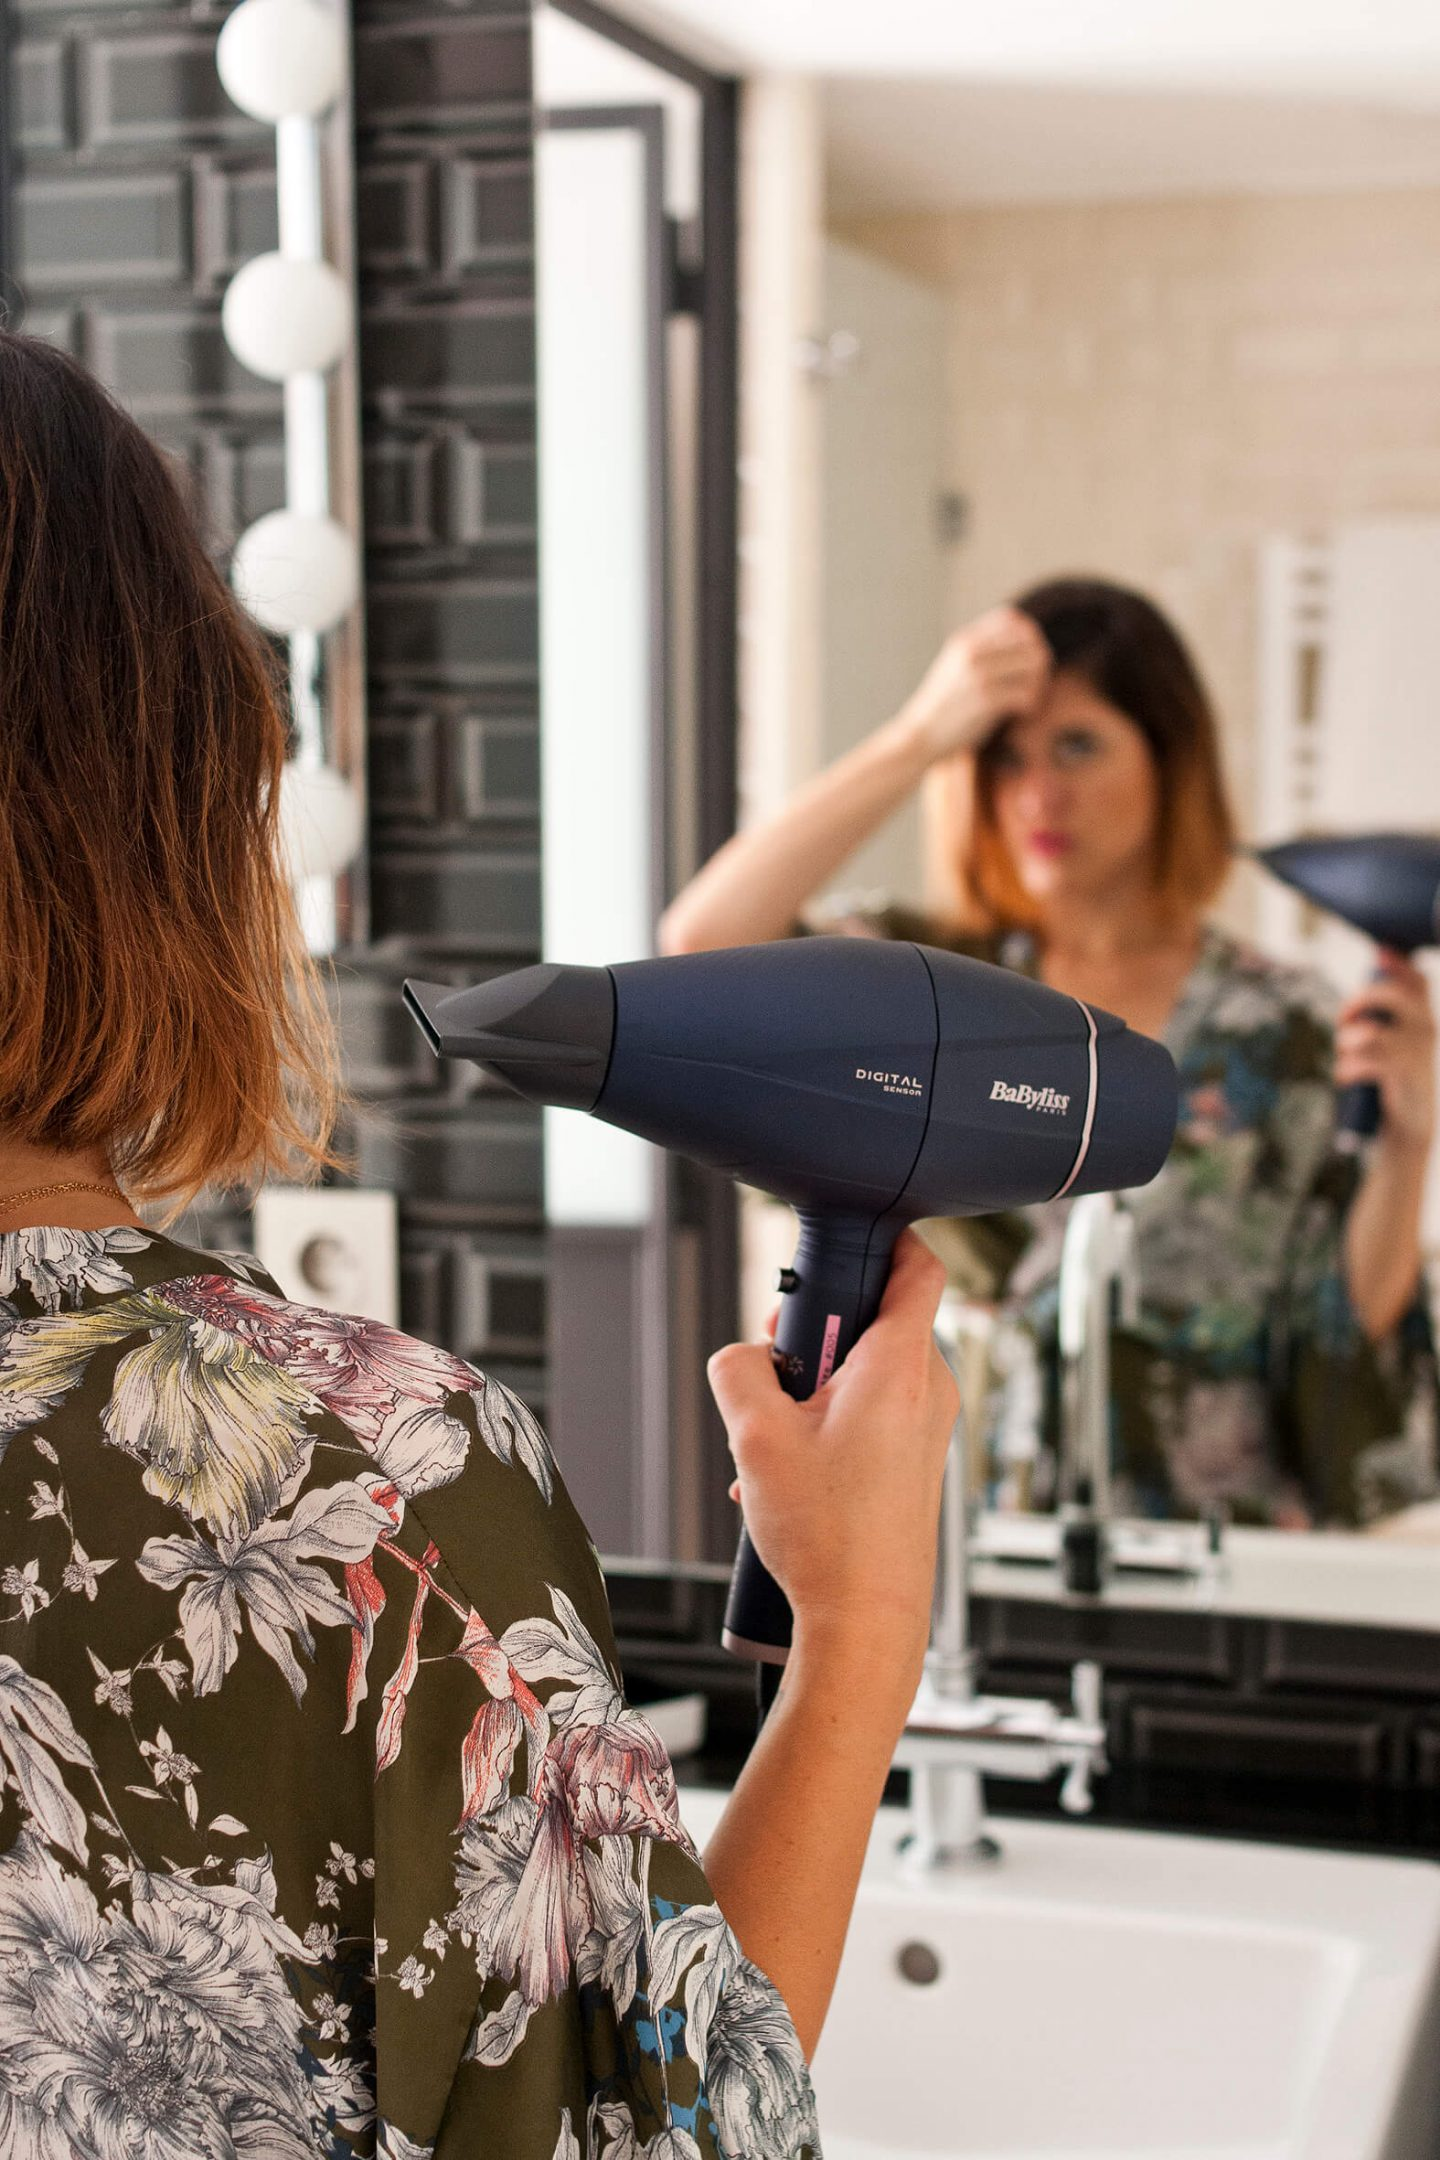 Test Digital Sensor Sèche cheveux Babyliss L'atelier d'al blog mode lifestyle DIY Paris